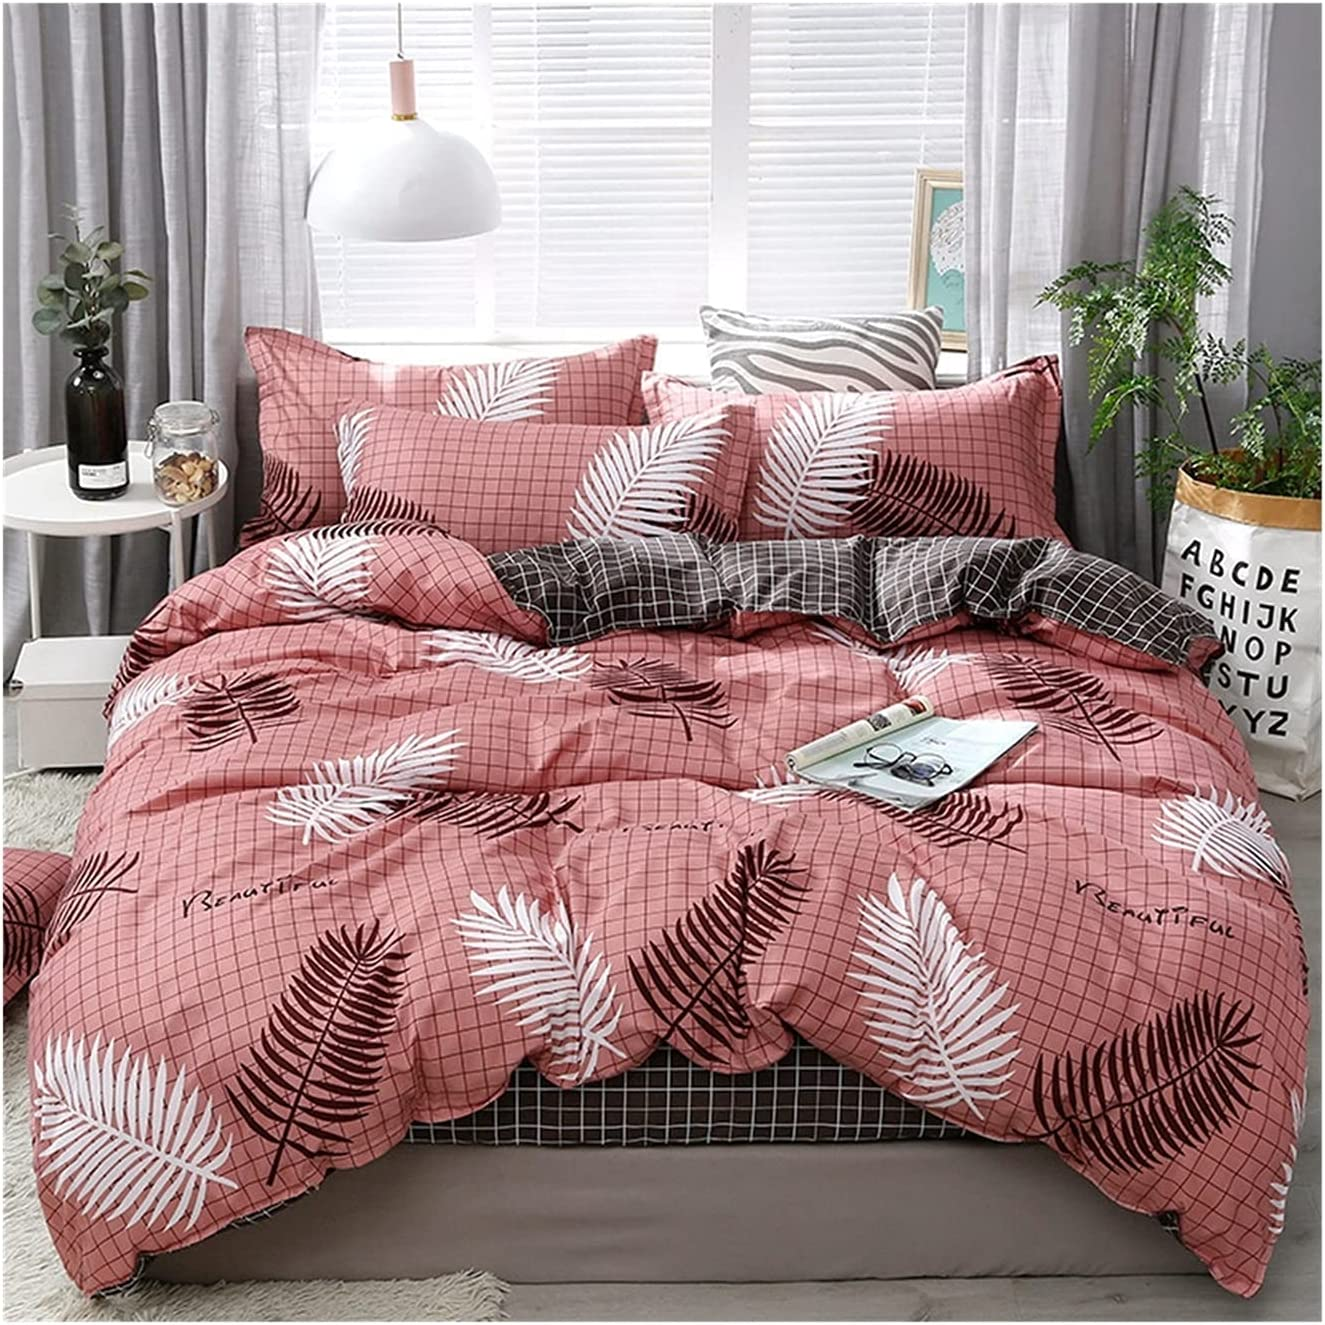 LSDJ Max 63% OFF QMDSH Home Textile Girl Bedding Duvet Cover Set Spring new work one after another Peach Pink